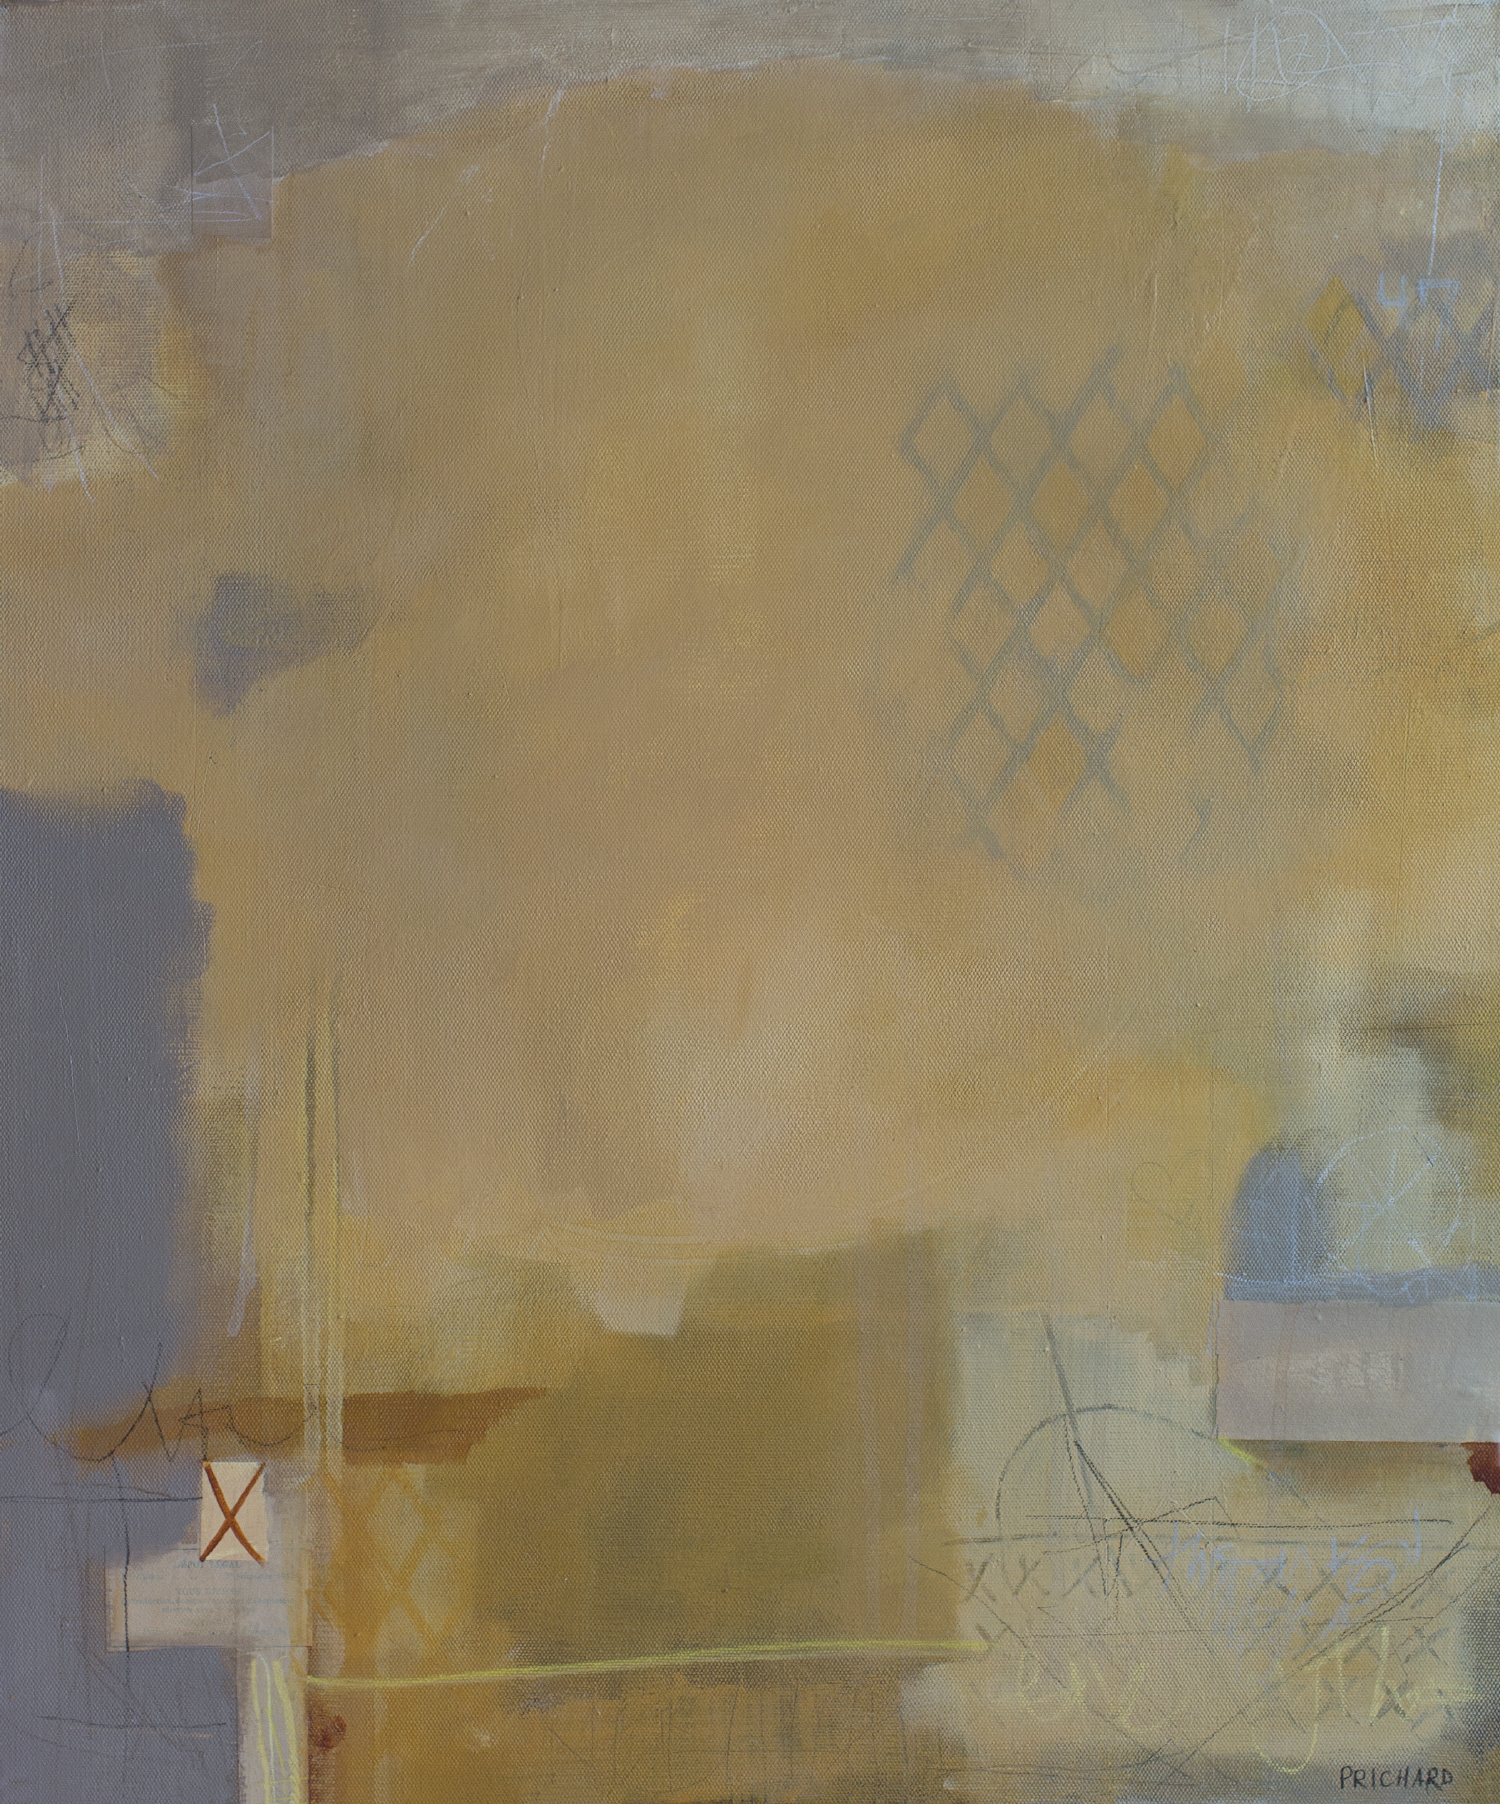 Yep....abstract shapes, composition....distressed, aged paint colors!